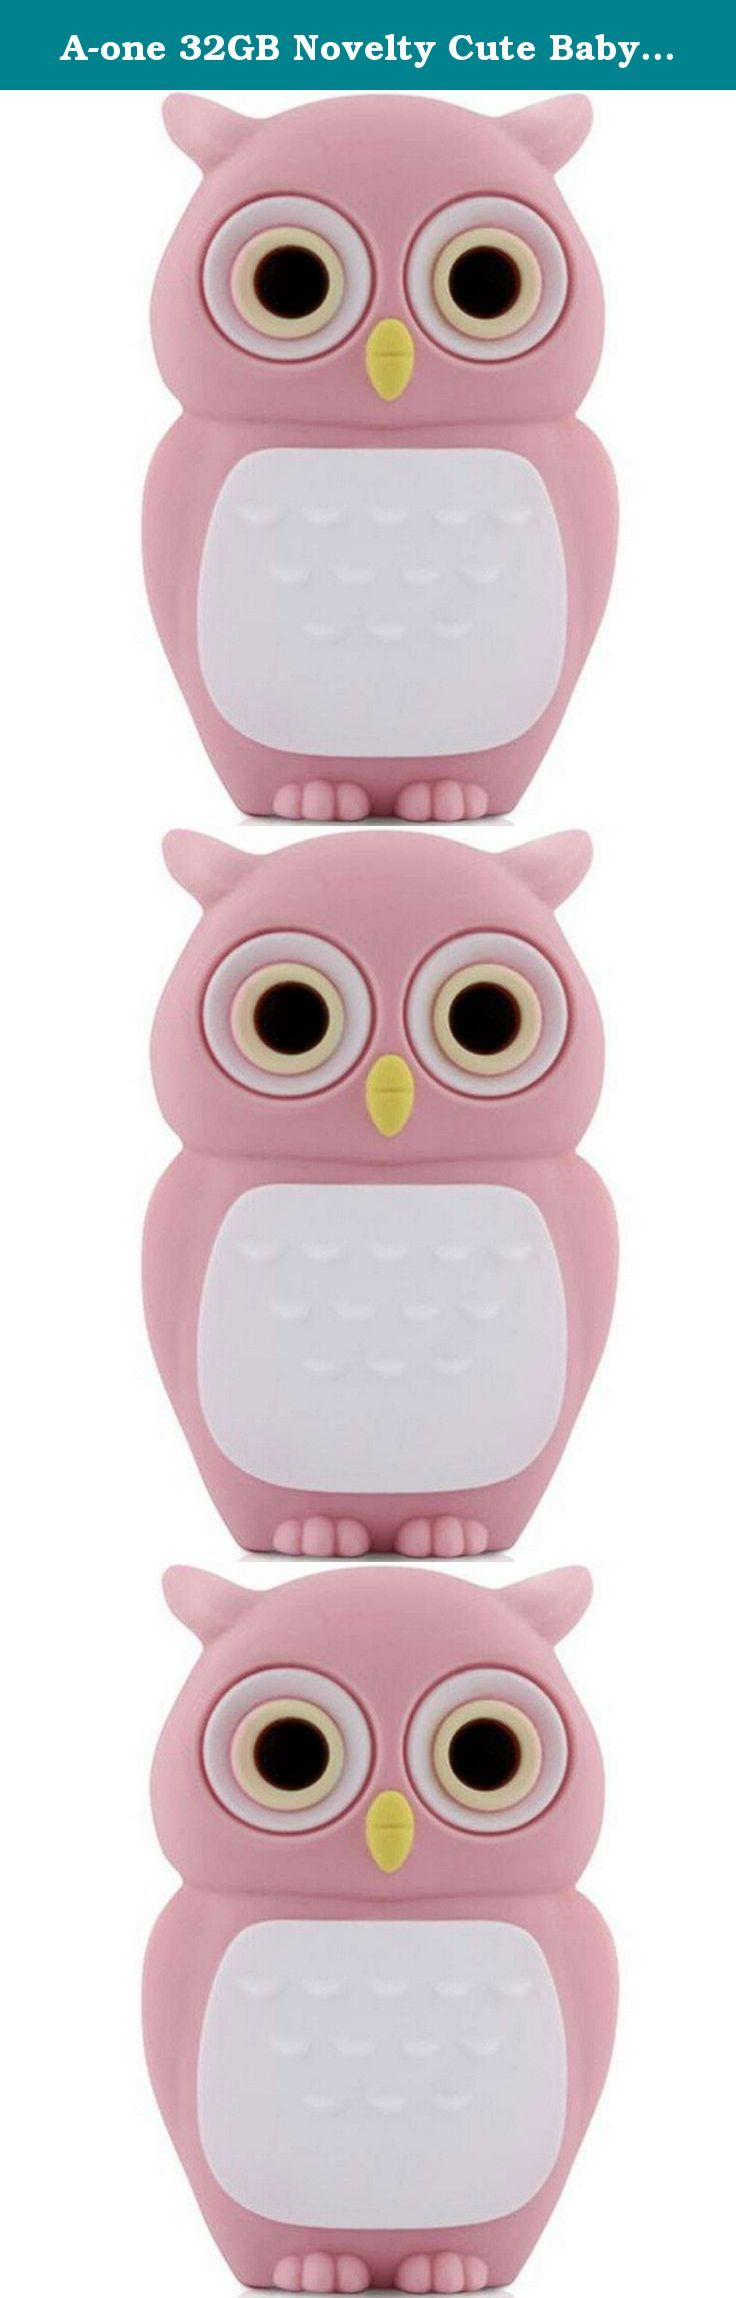 A-one 32GB Novelty Cute Baby Owl USB 2.0 Flash Drive Data Memory Stick Device (Pink). Description: Capacities:8GB,16GB,32GB Interface: USB2.0 Color:Brown,Pink This lovely cartoon baby owl design USB flash drive is a fun and practical way of storing all of your important files and documents. It makes for a great gift for family,friends or even significant others so don't pass up this terrific offer! Standard packaging: Usb flash drive*1 Retail package*1.